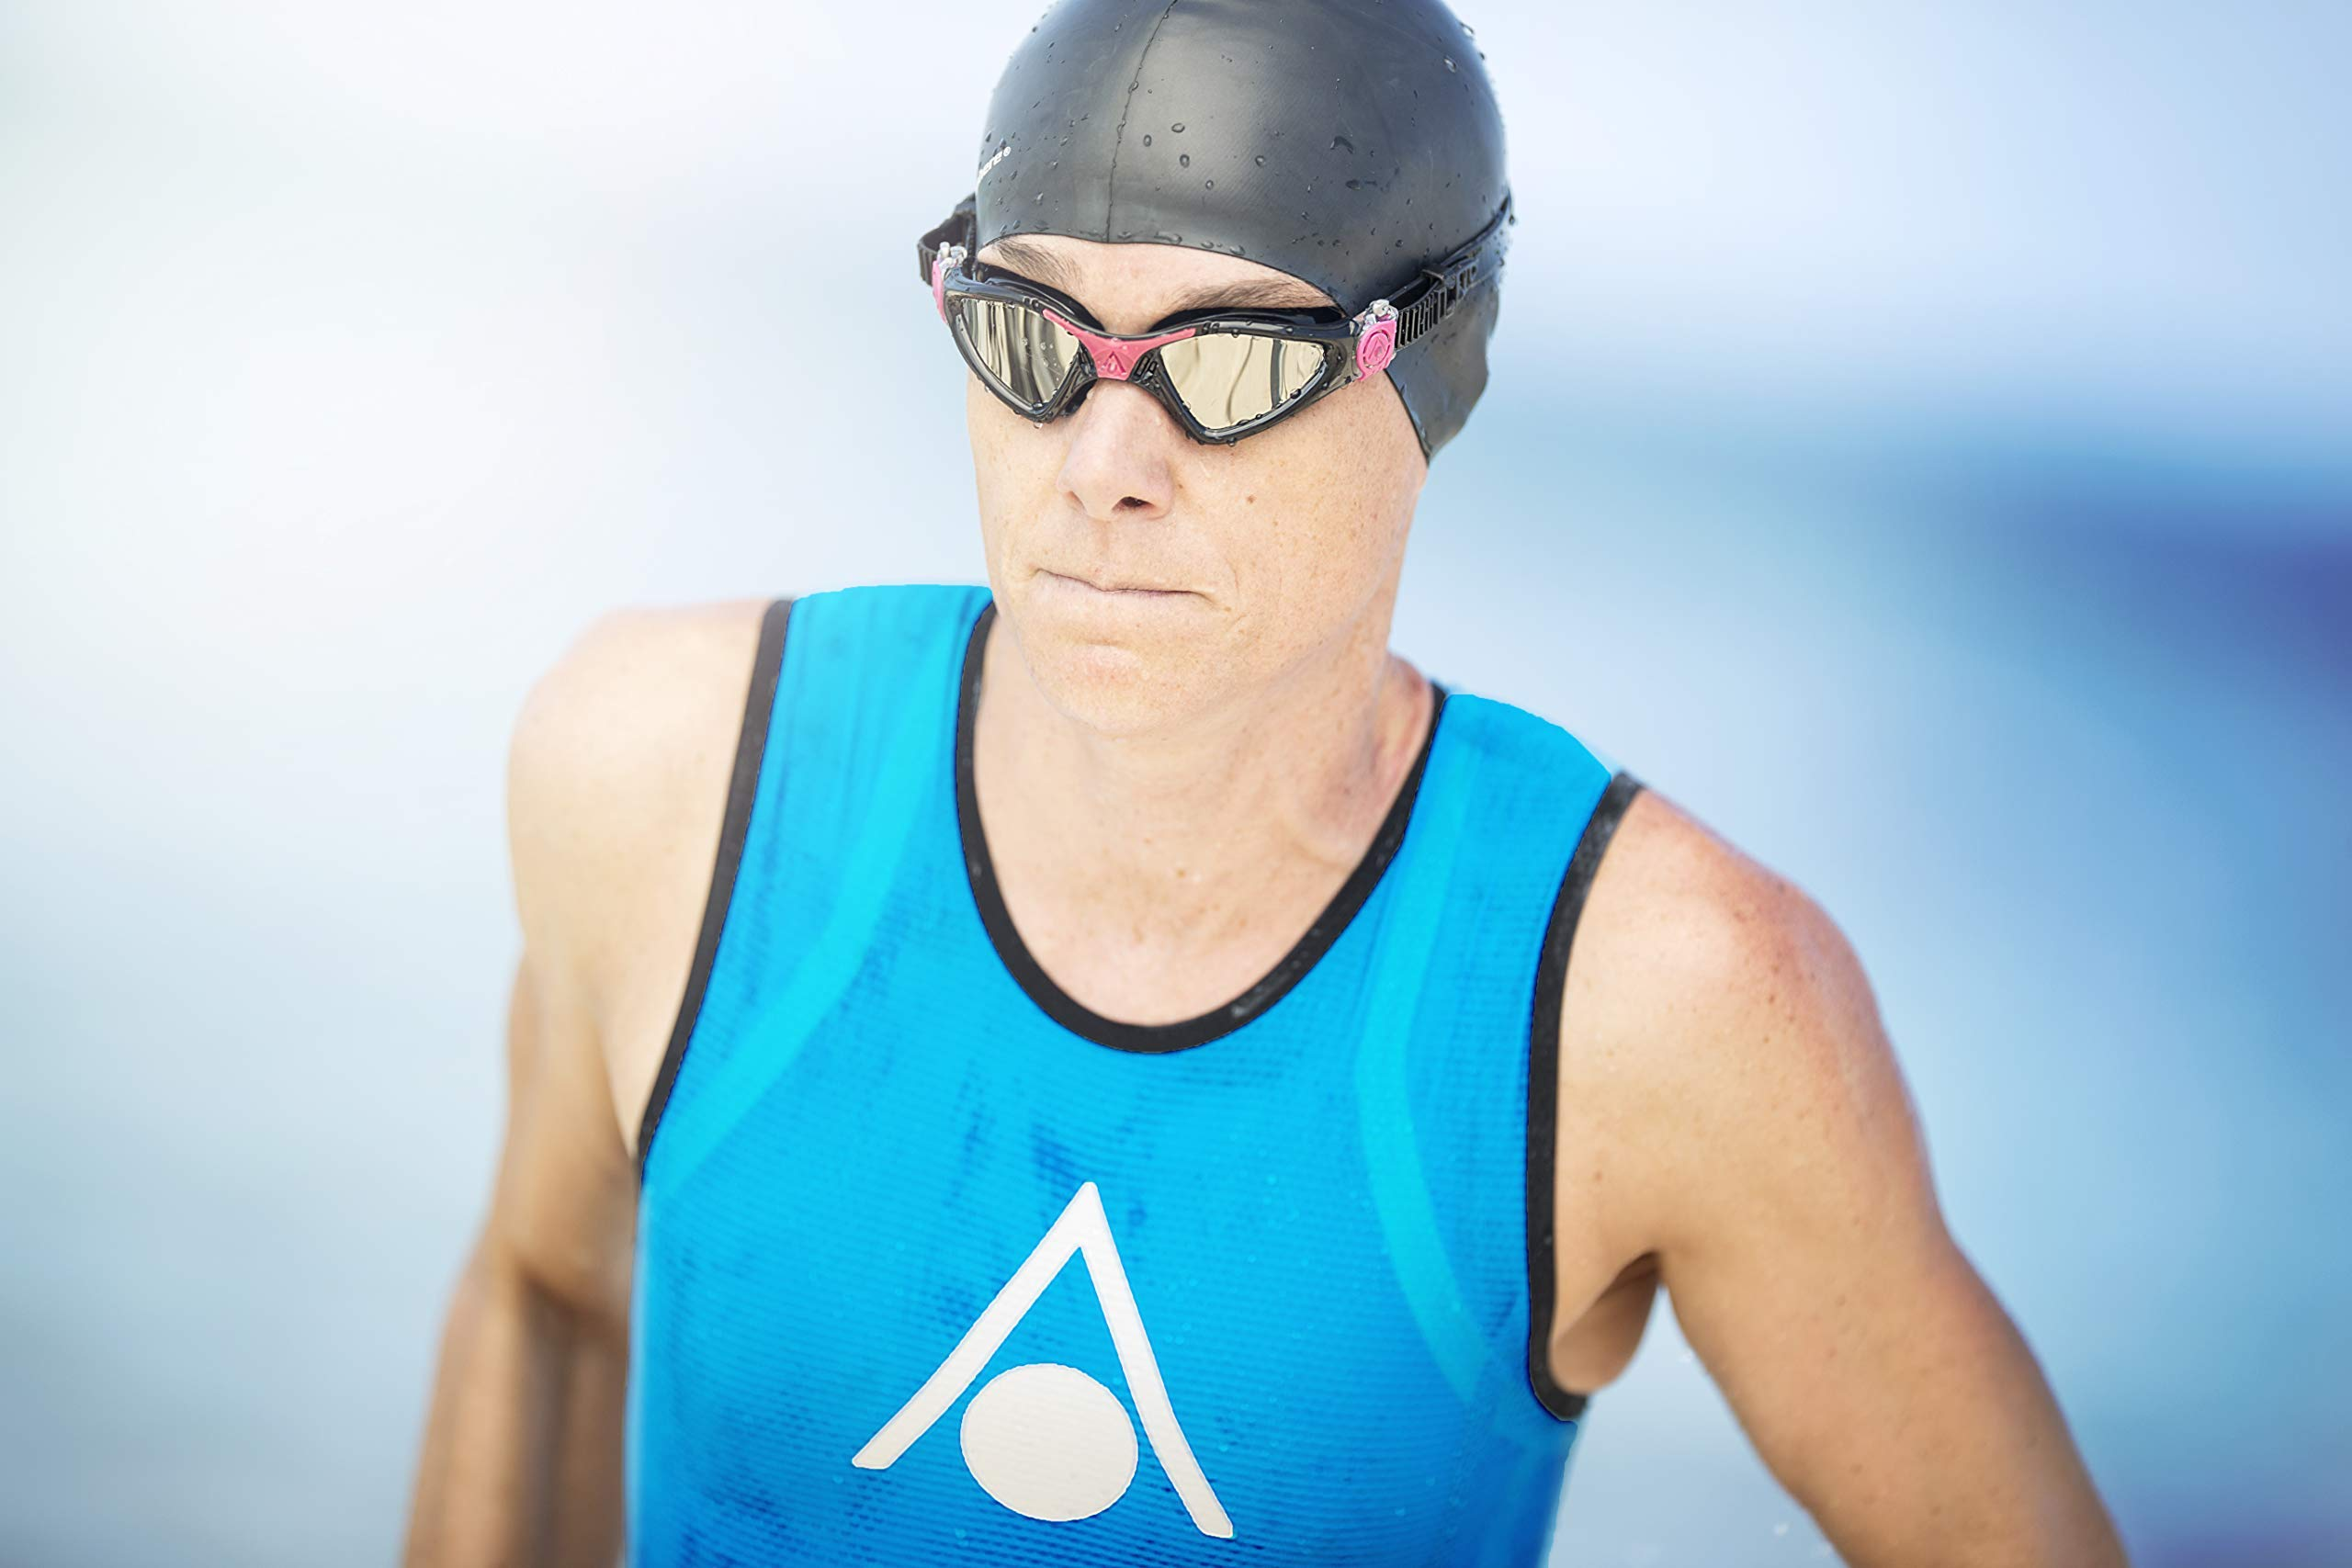 Aqua Sphere Kayenne Ladies with Clear Lens (Trasp/Fuxia) Swim Goggles for Women by Aqua Sphere (Image #7)